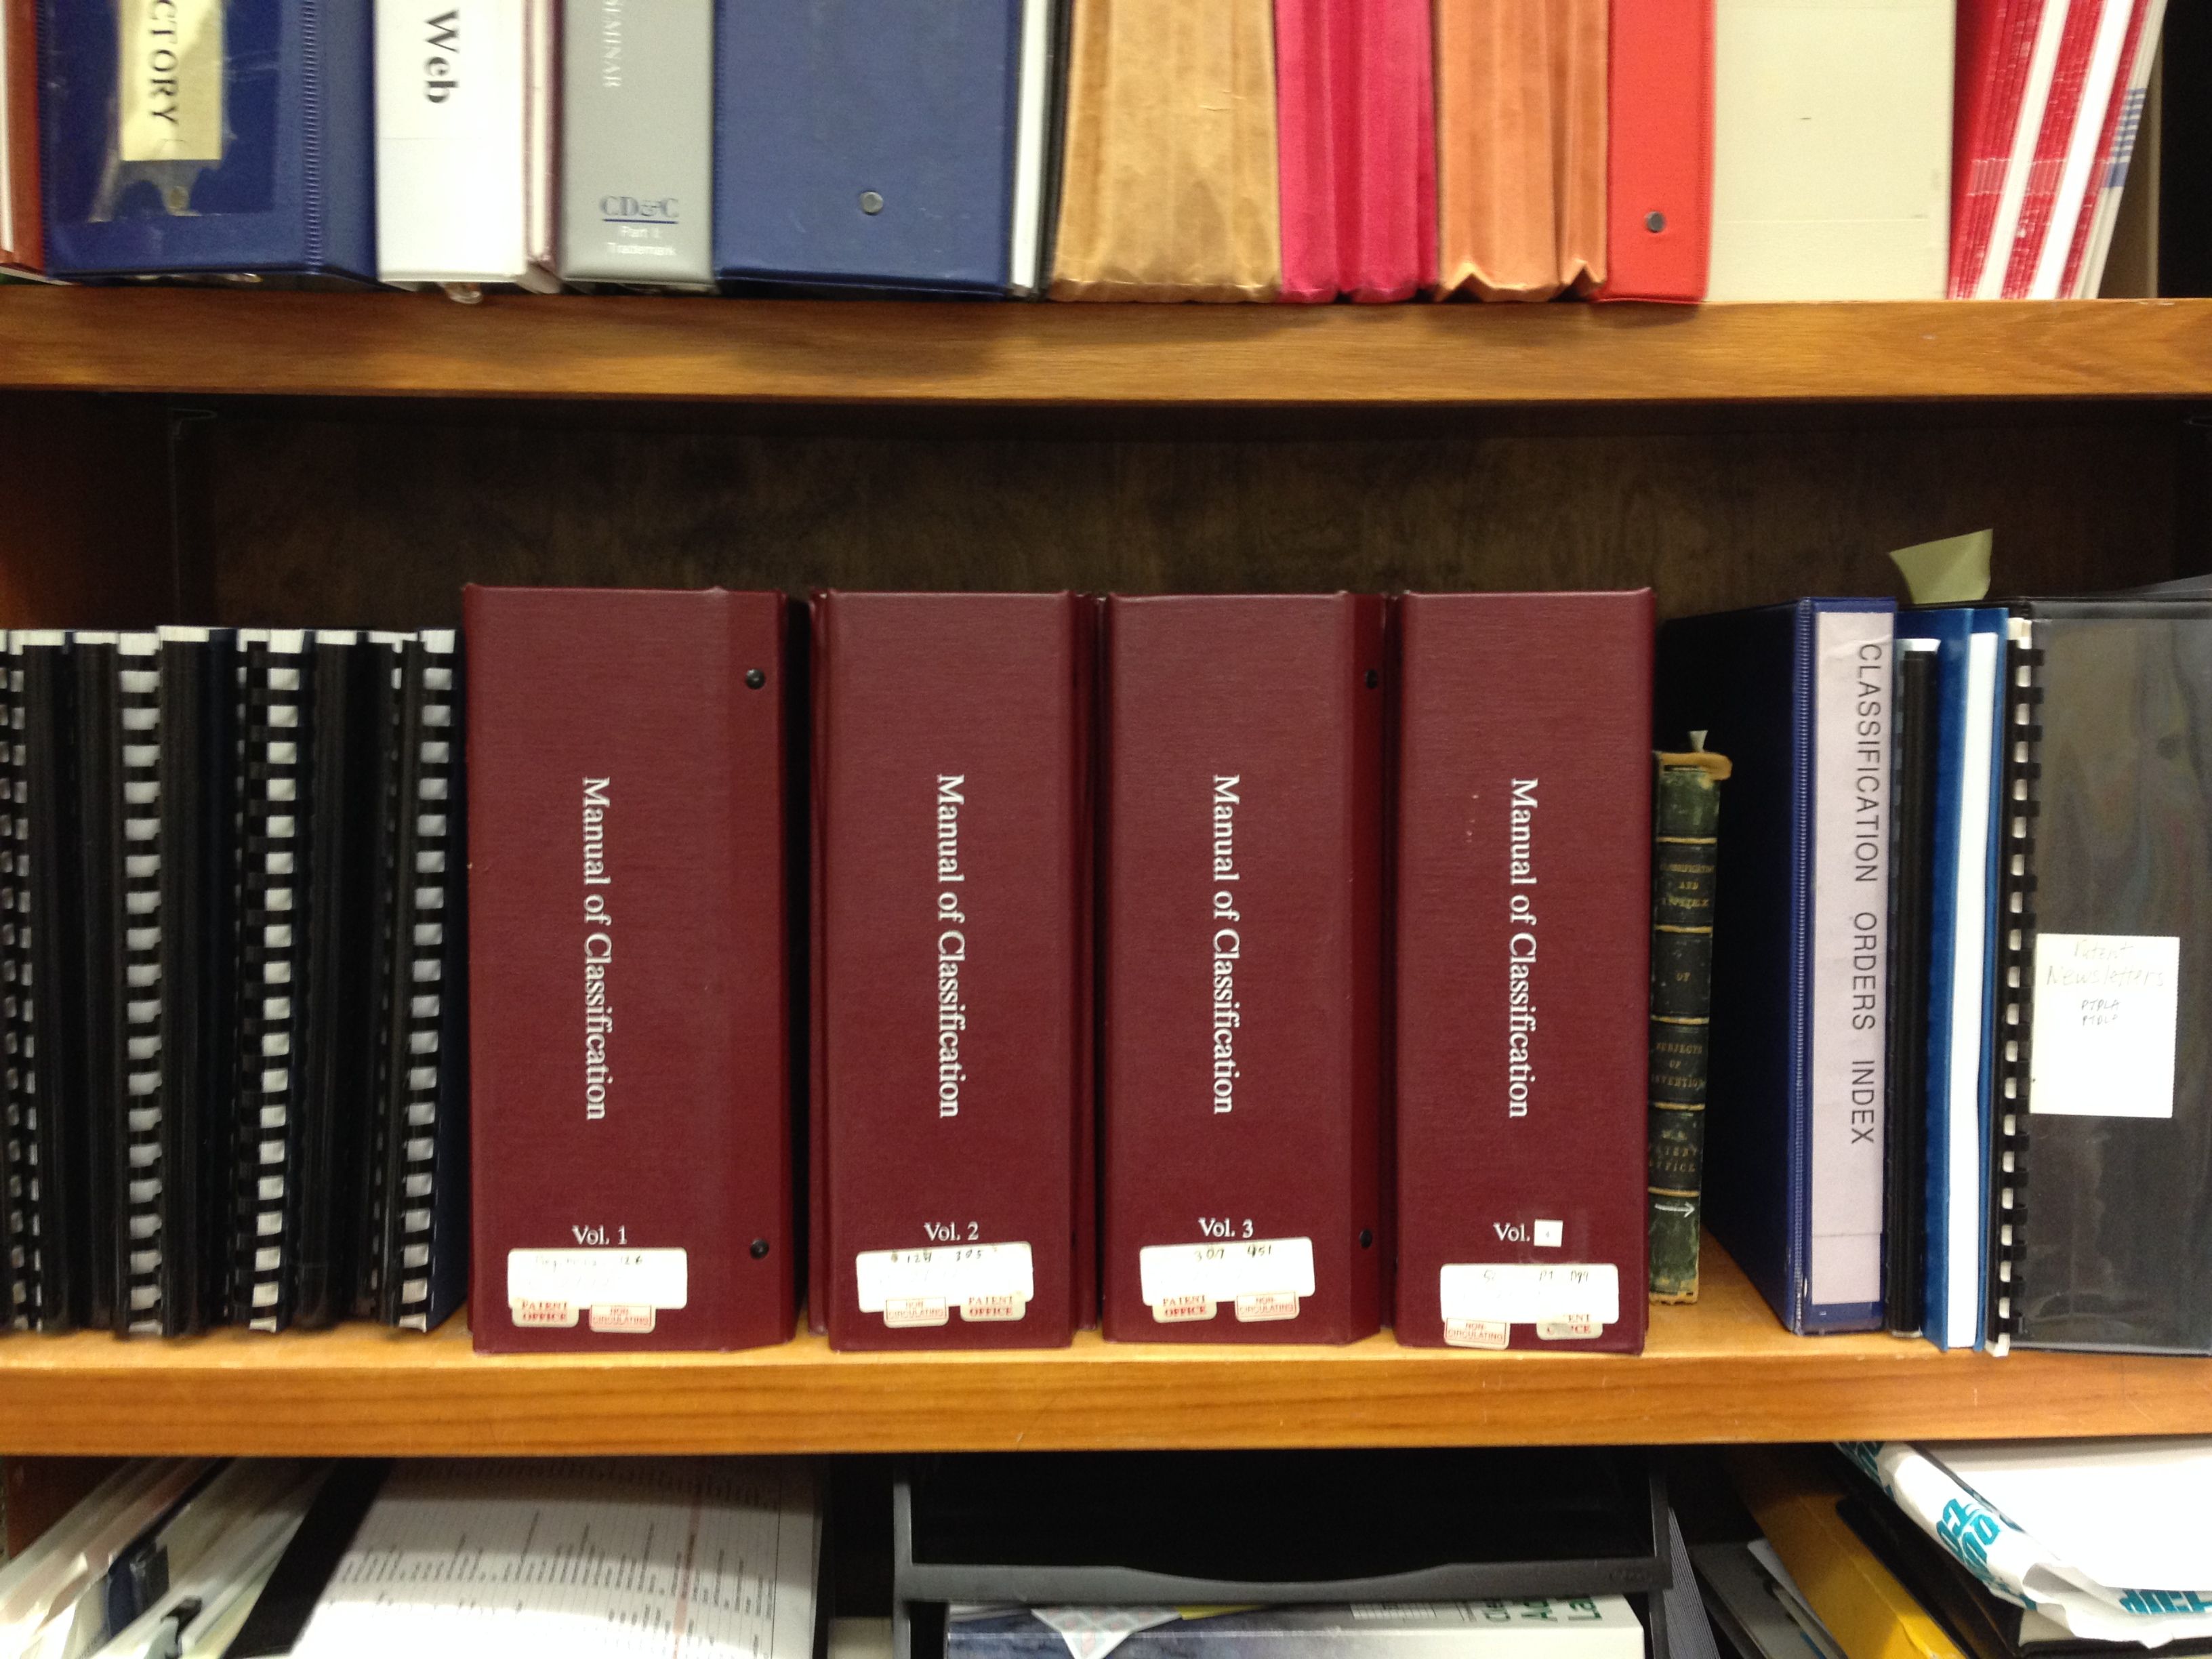 classification manuals on shelf